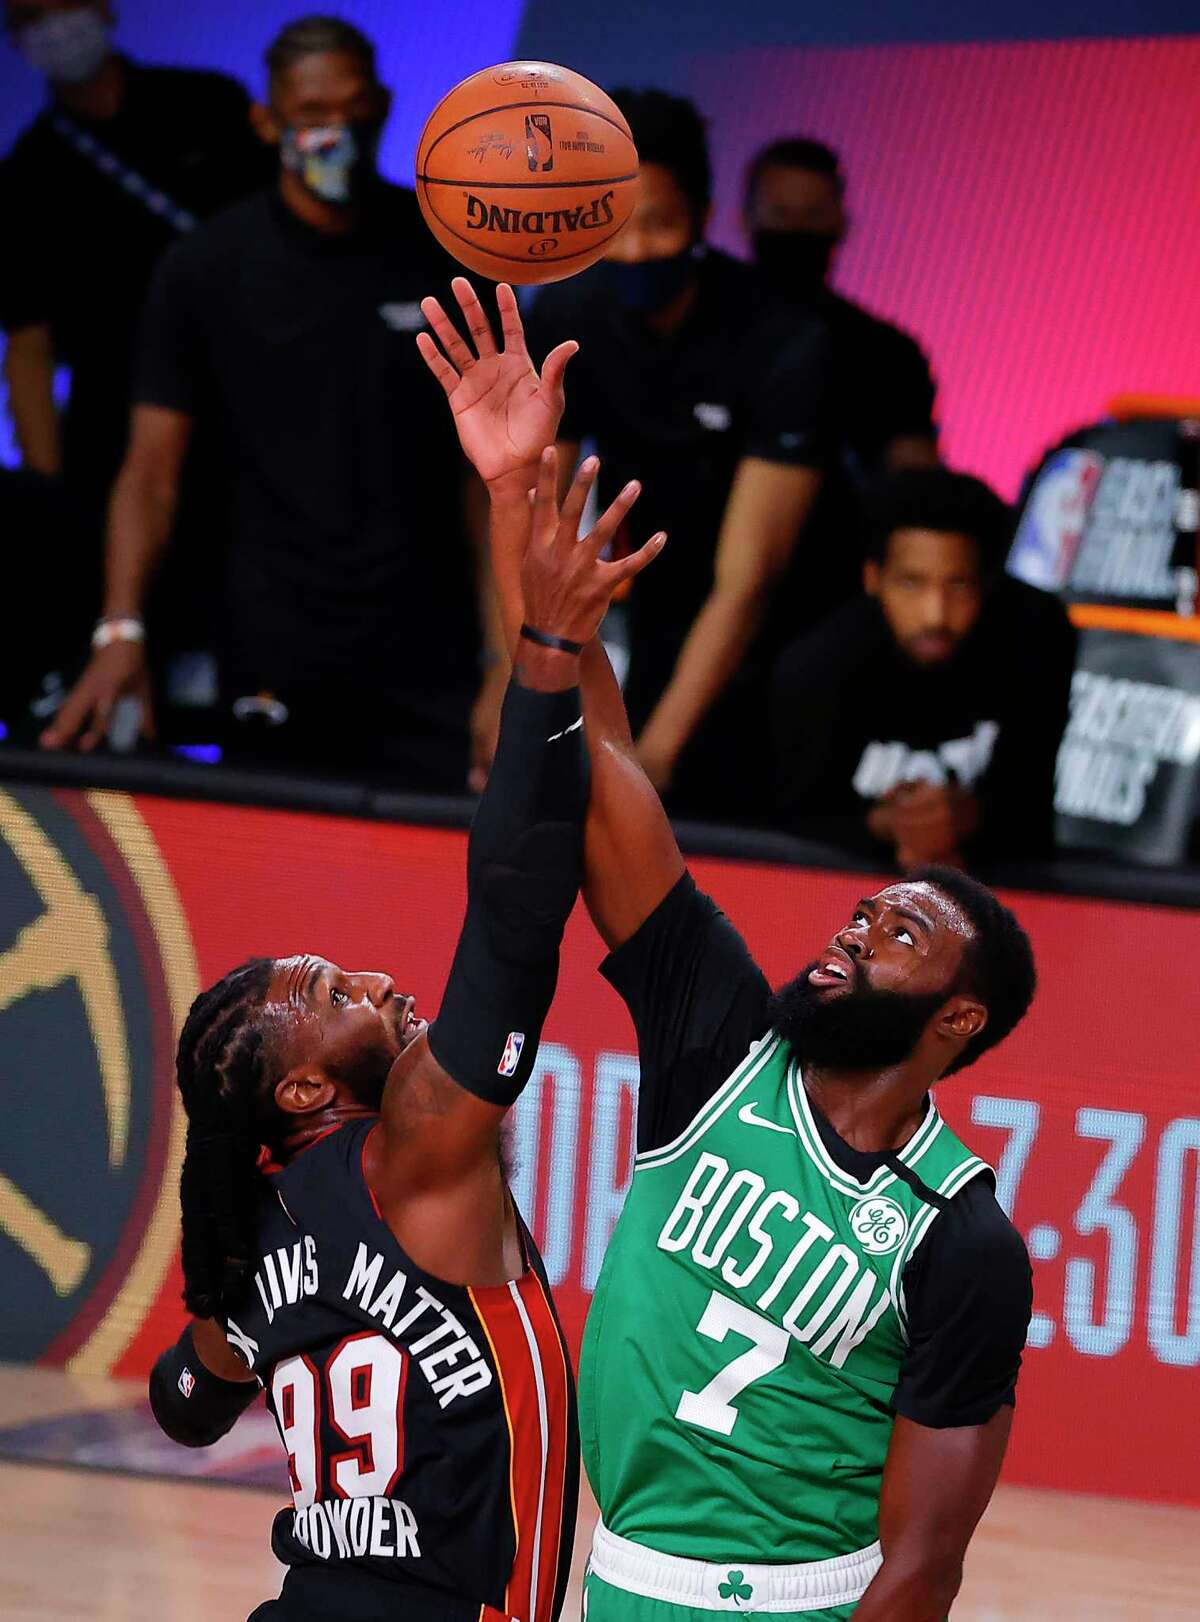 LAKE BUENA VISTA, FLORIDA - SEPTEMBER 19: Jae Crowder #99 of the Miami Heat and Jaylen Brown #7 of the Boston Celtics fight for a jump ball during the first quarter in Game Three of the Eastern Conference Finals during the 2020 NBA Playoffs at AdventHealth Arena at the ESPN Wide World Of Sports Complex on September 19, 2020 in Lake Buena Vista, Florida. NOTE TO USER: User expressly acknowledges and agrees that, by downloading and or using this photograph, User is consenting to the terms and conditions of the Getty Images License Agreement. (Photo by Kevin C. Cox/Getty Images)